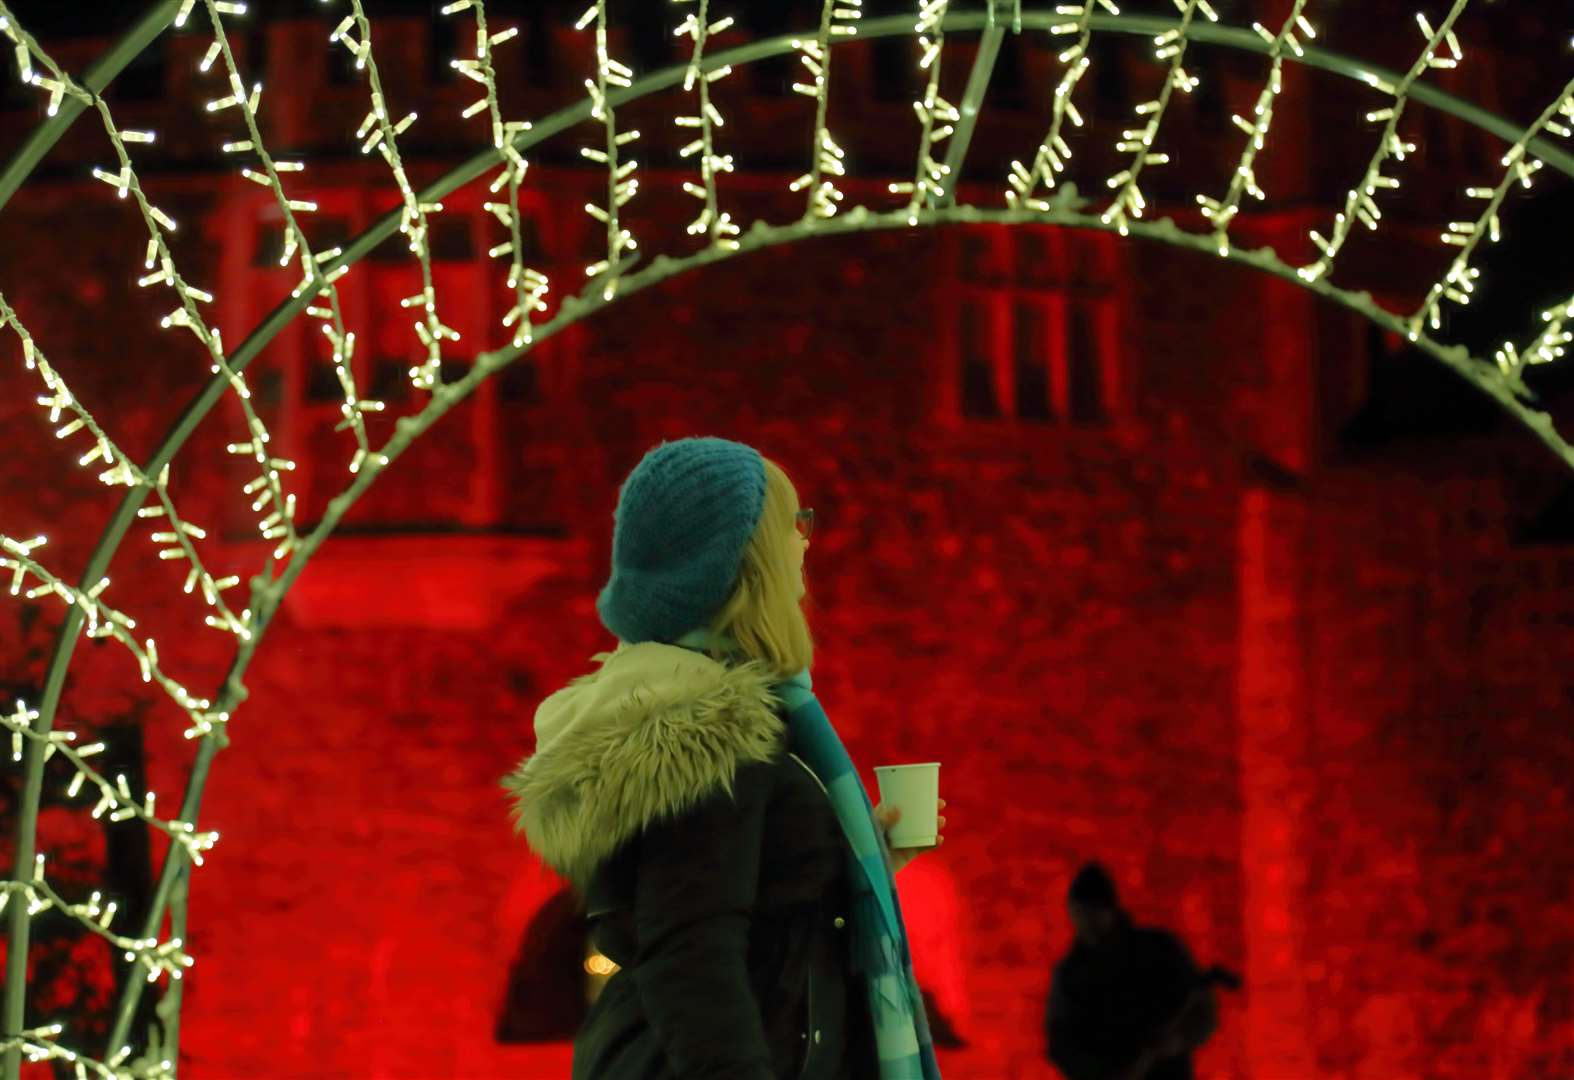 Castle gardens transformed by festive lights